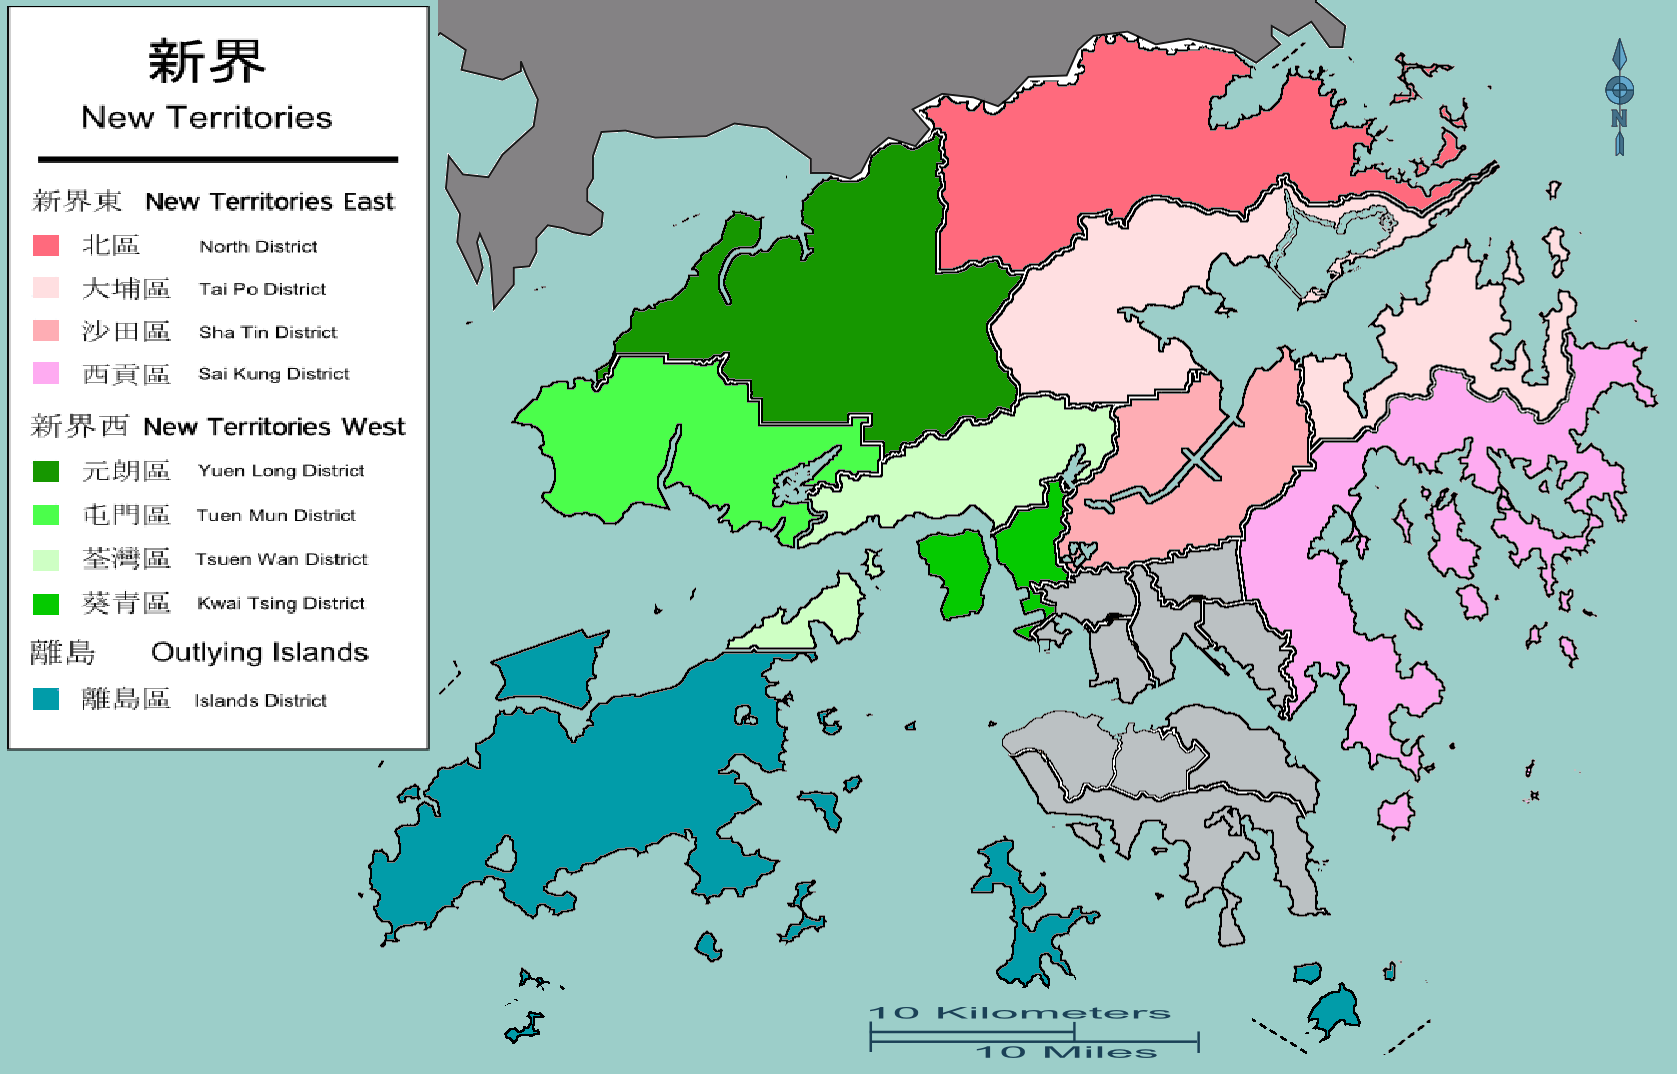 FileHK Districts of New Territoriespng Wikimedia Commons